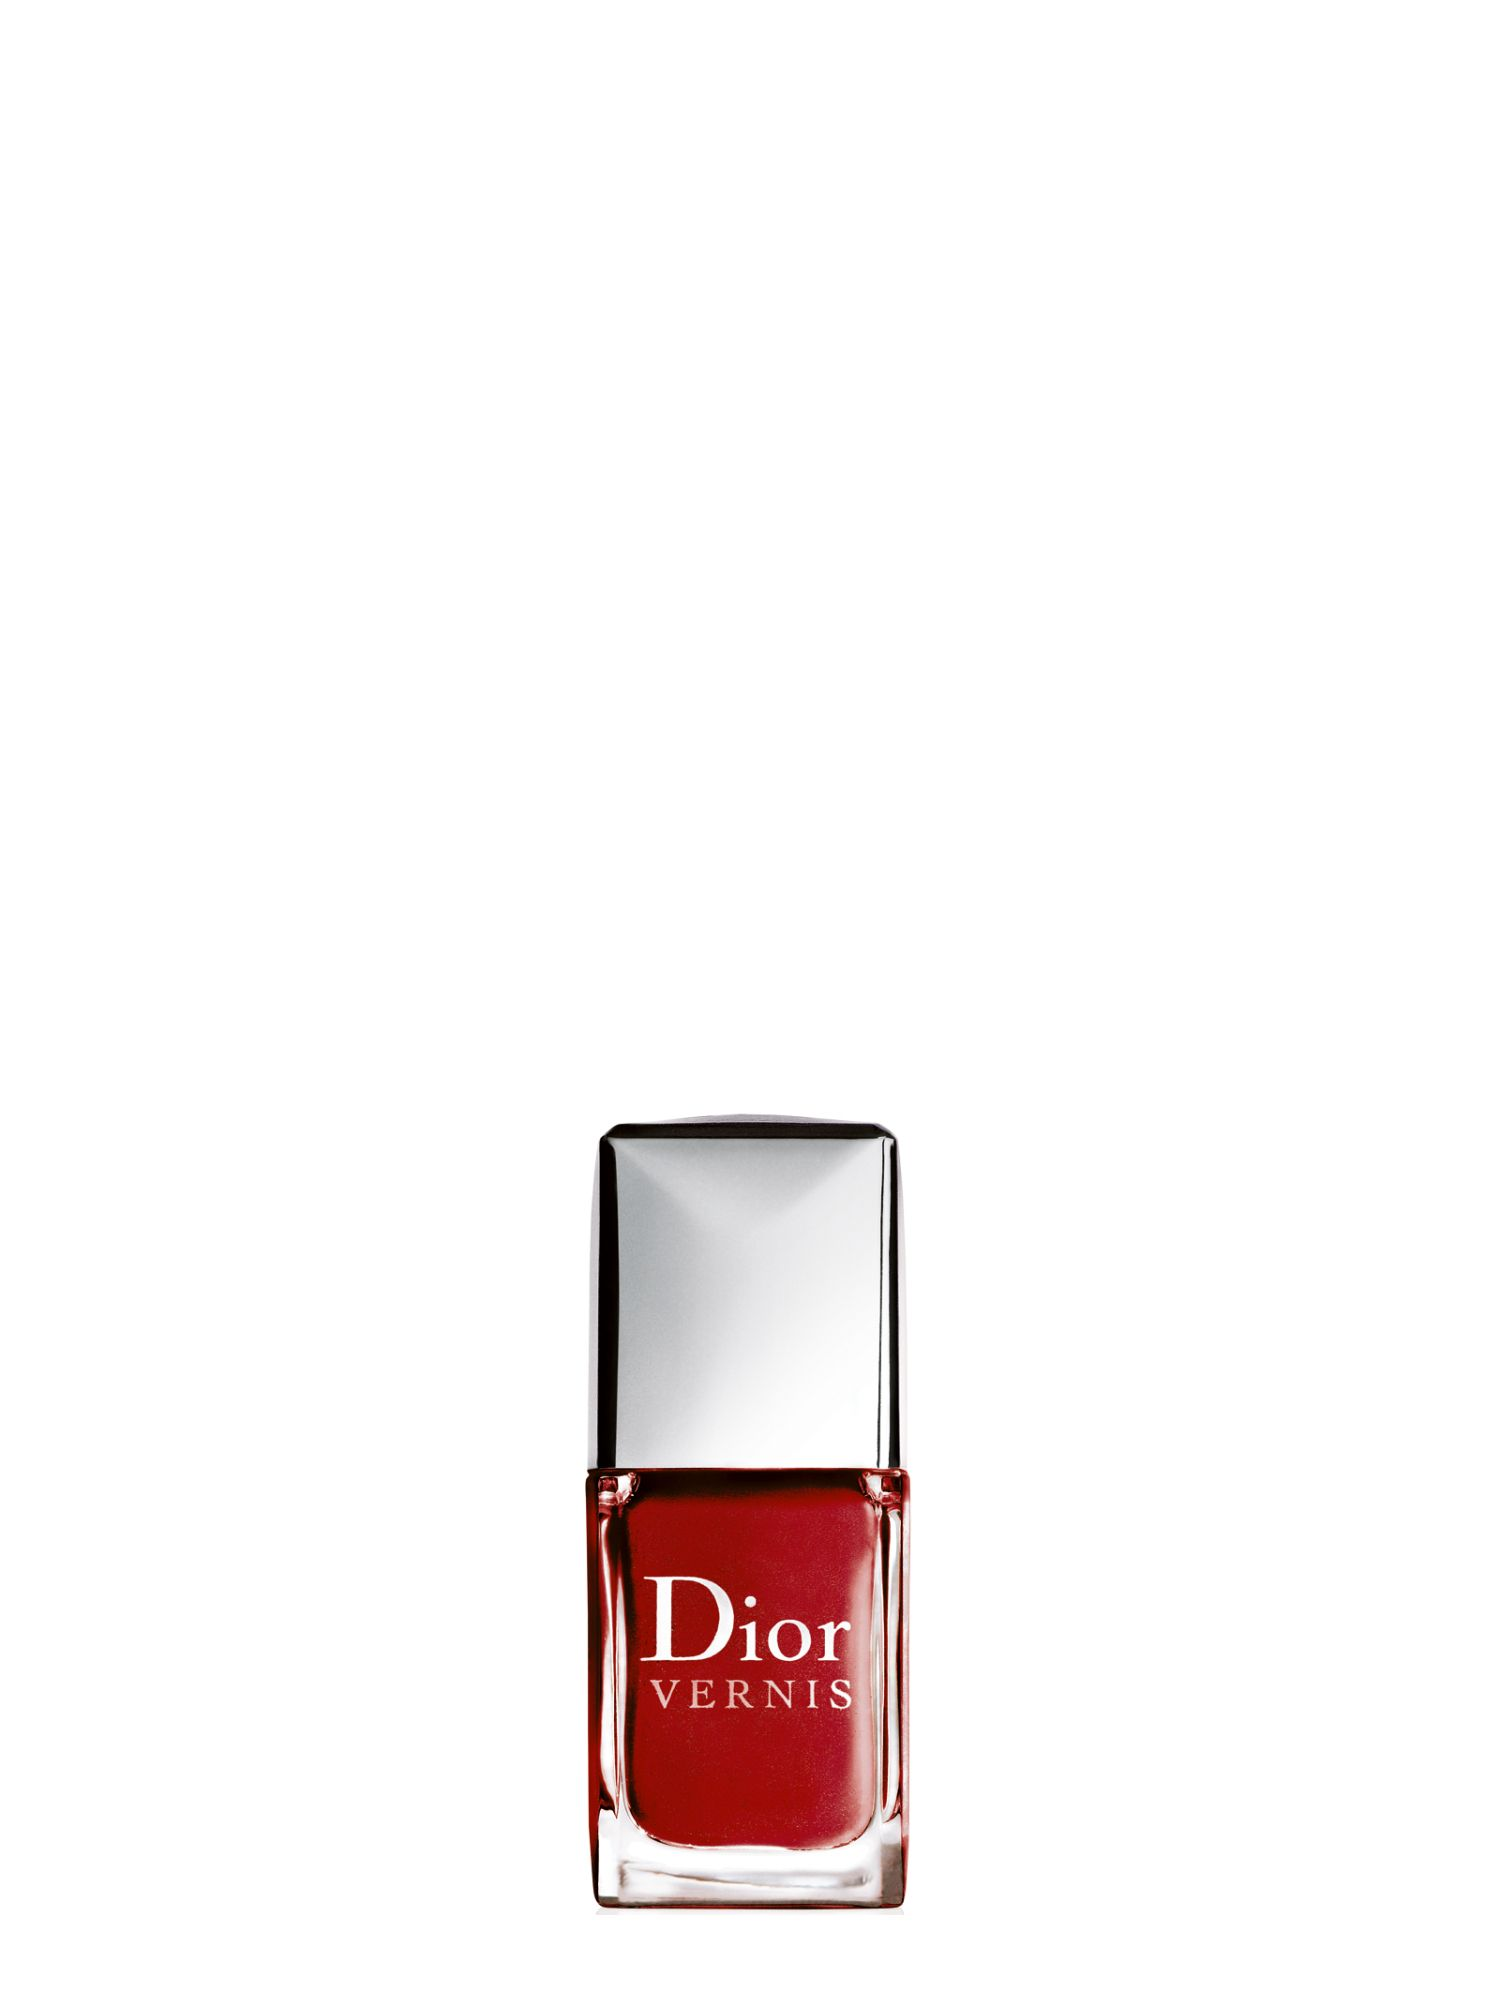 Dior Vernis Long-Wearing Nail Lacquer ROSE BOREAL